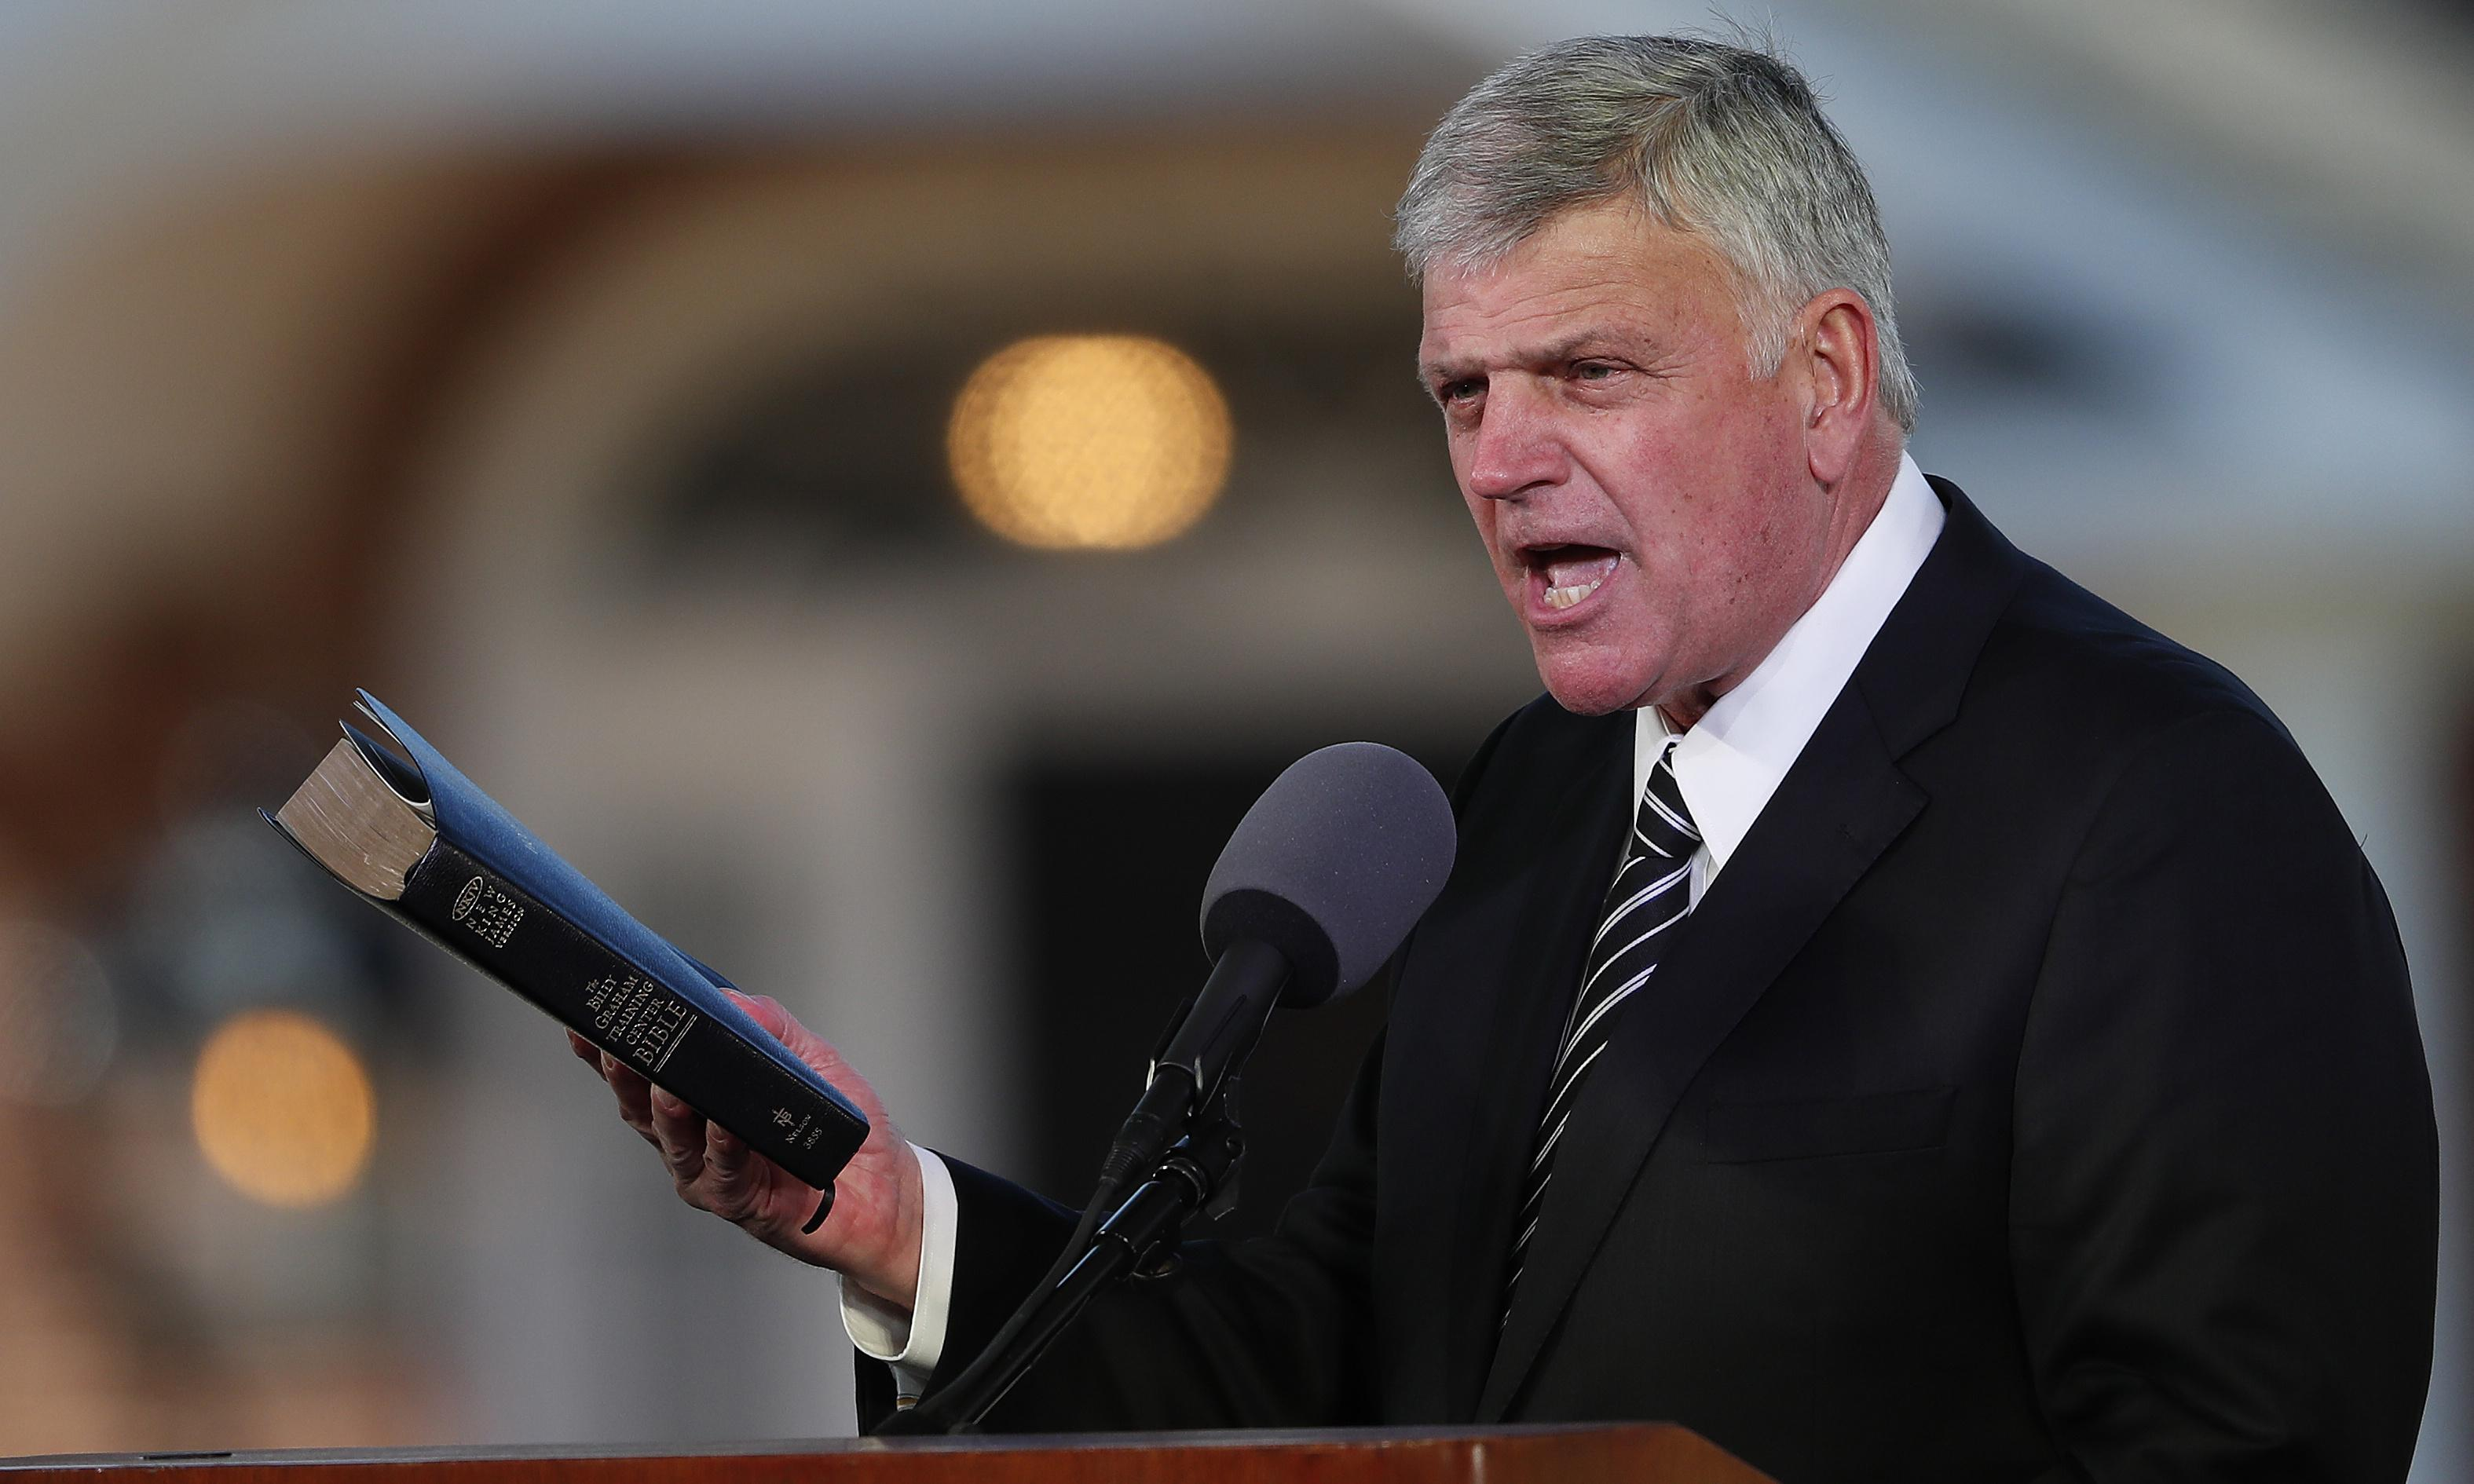 US preacher Franklin Graham tries to reverse UK tour cancellations